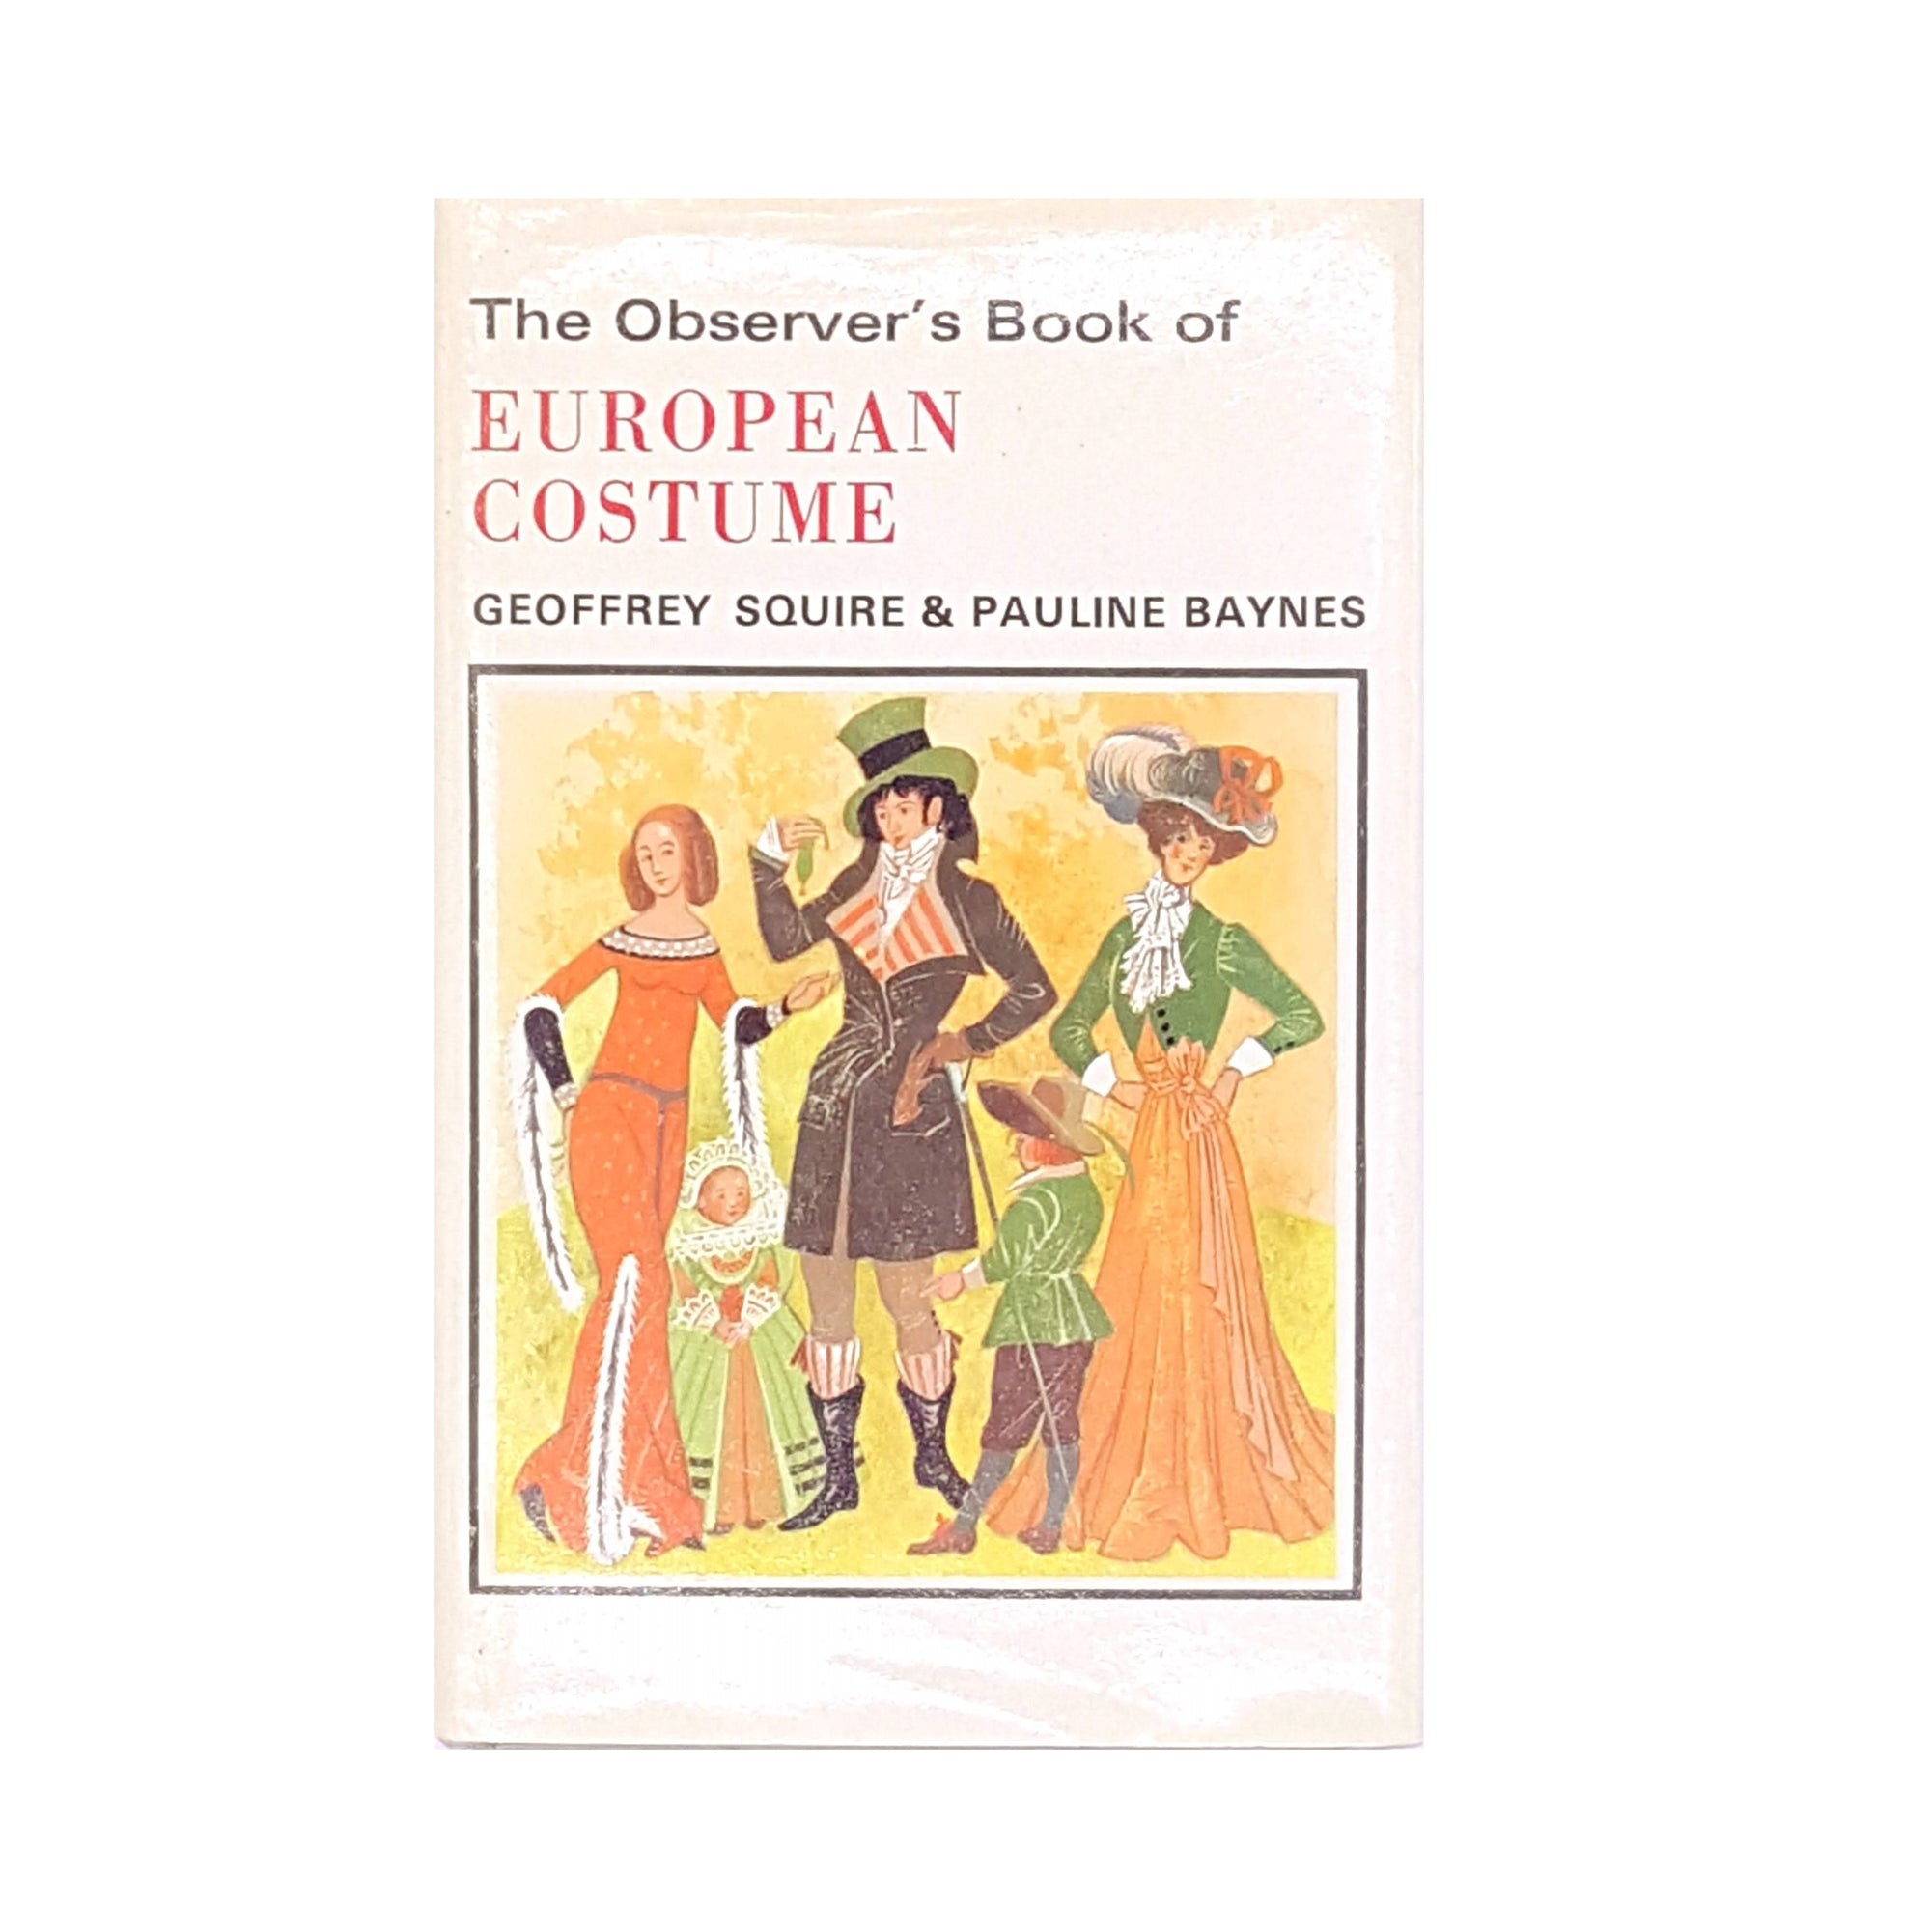 The Observer's Book of European Costume